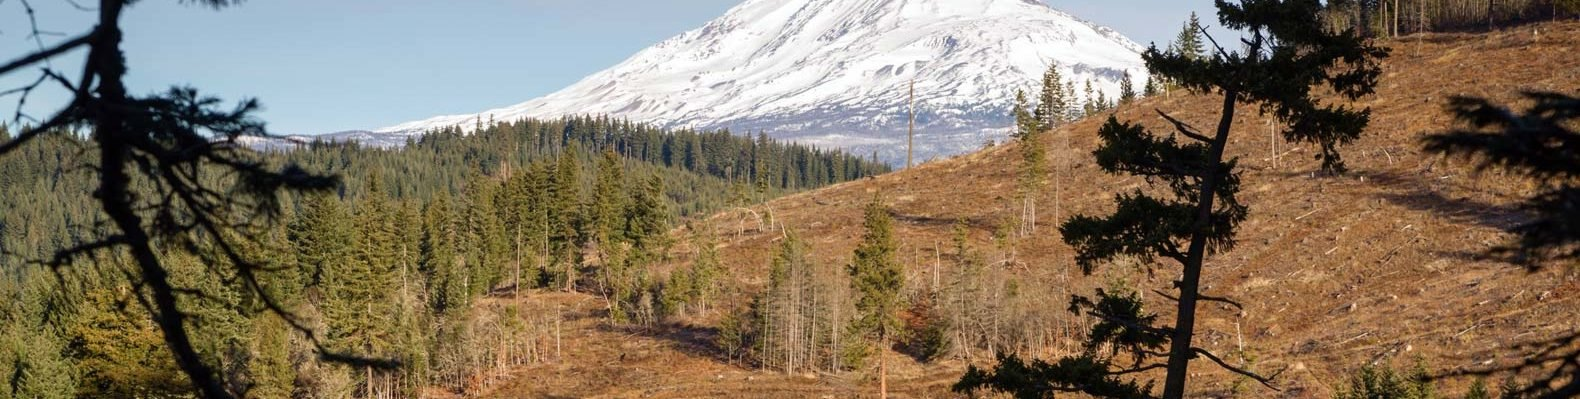 A deforested area in front of a snowy mountain